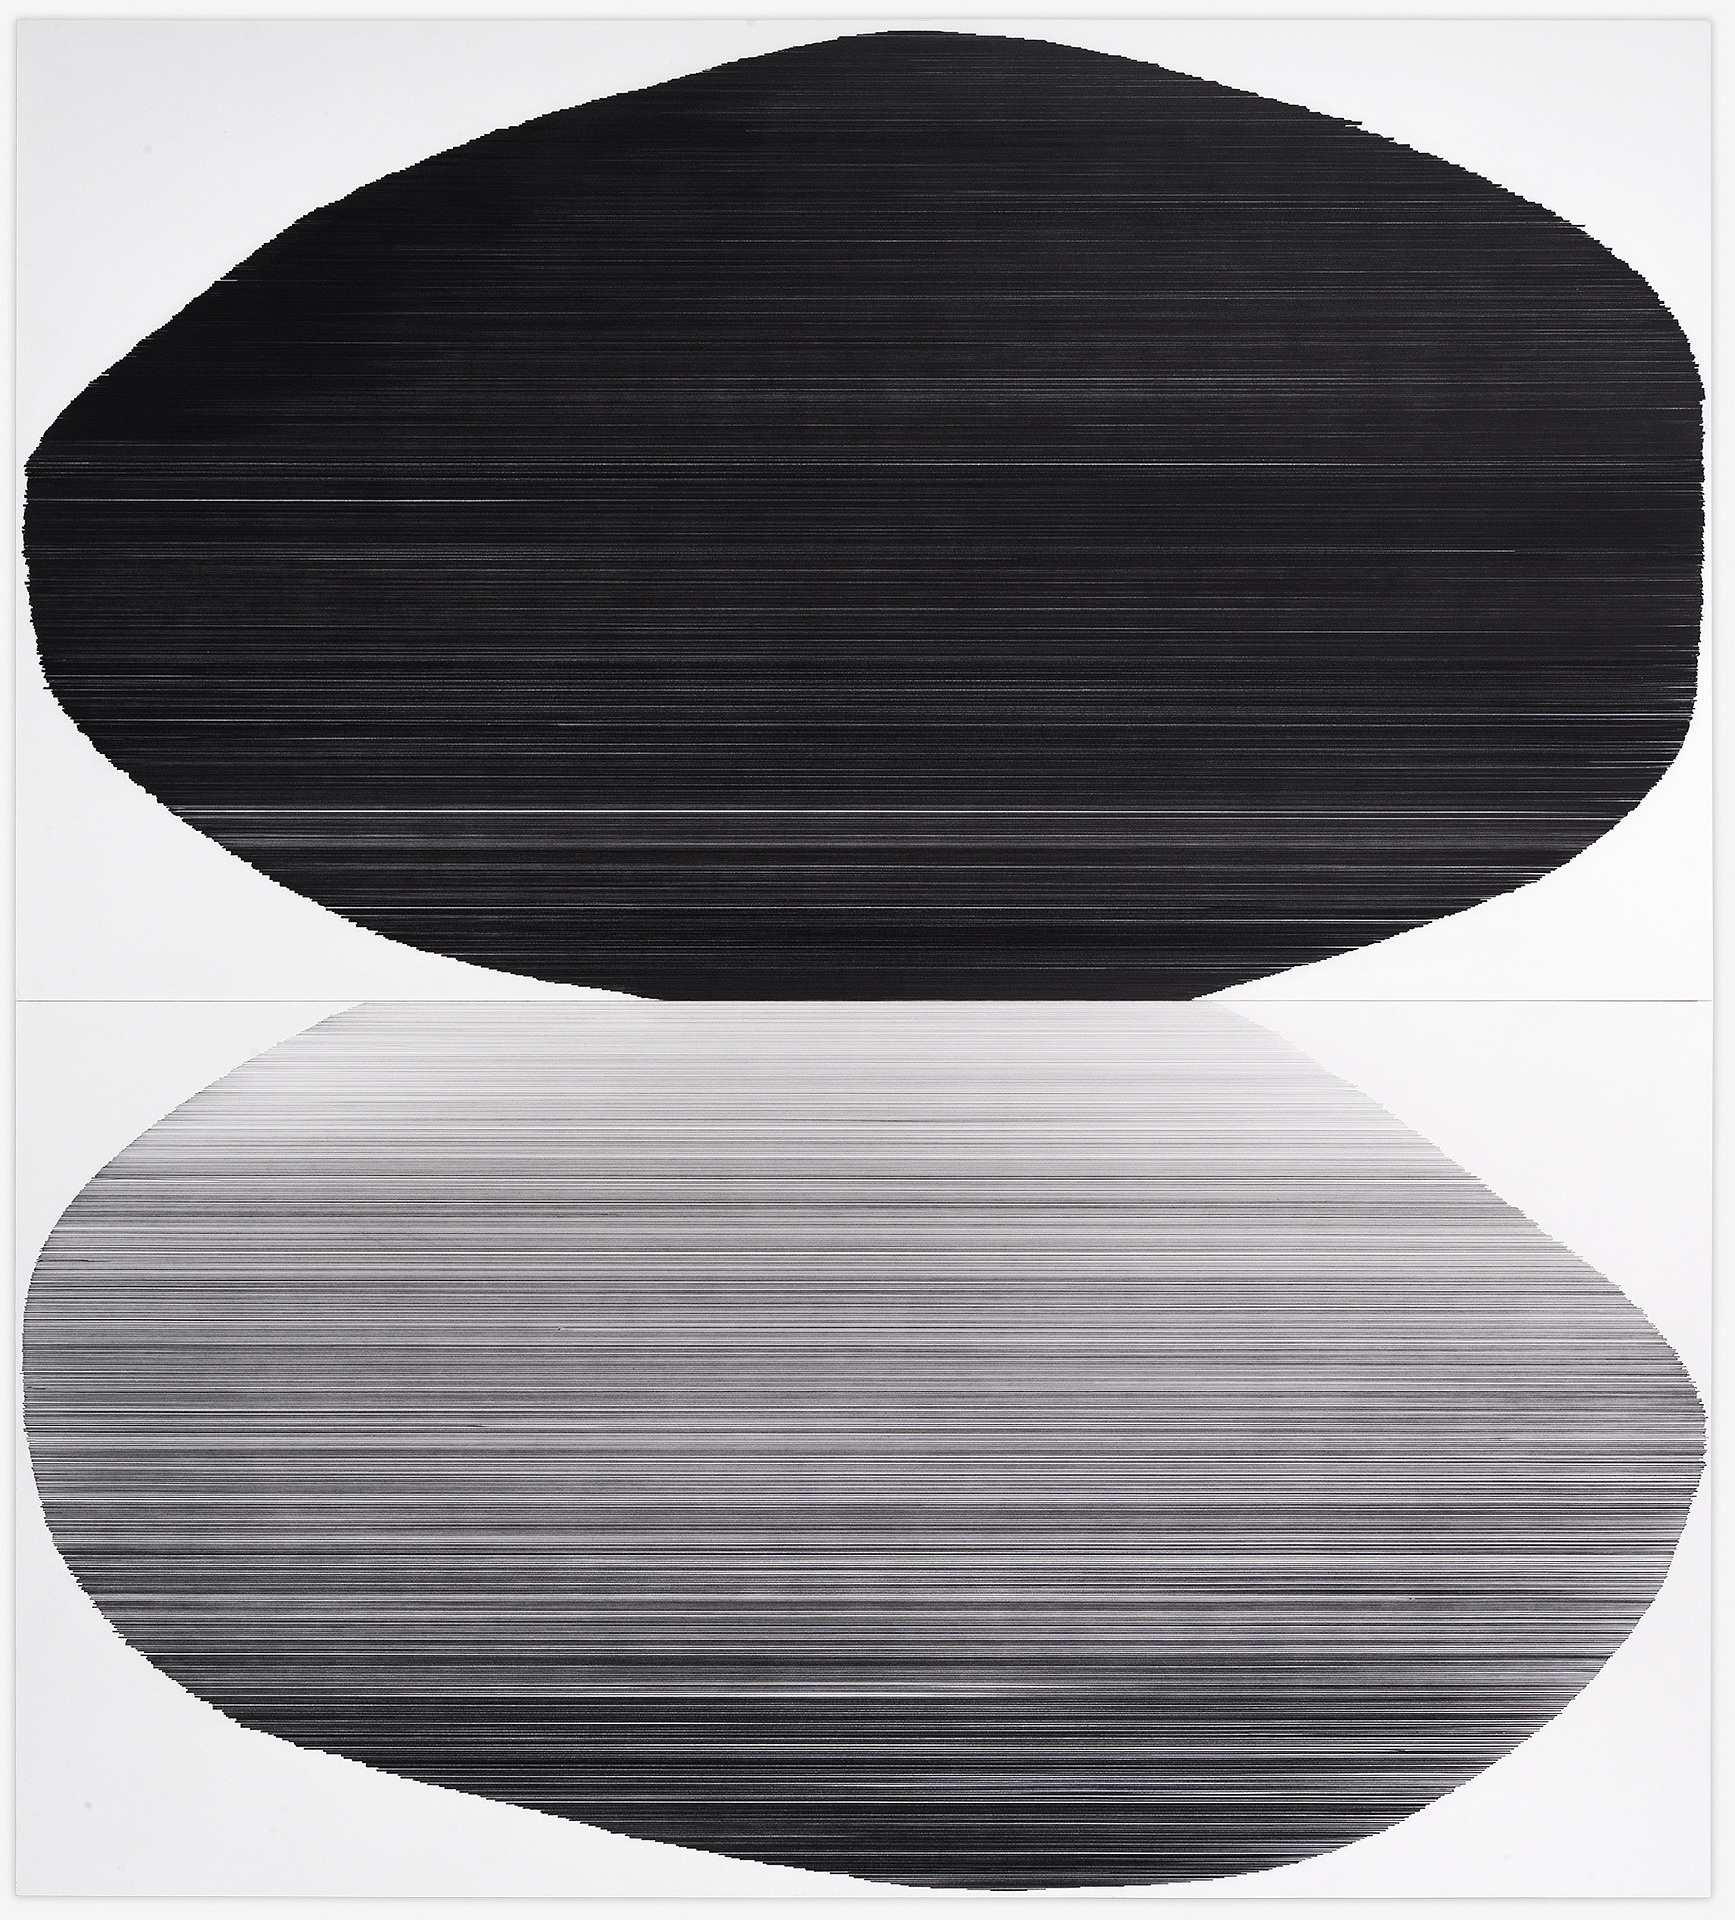 tandem 05   2016   graphite on mat board   59 by 65 inches private collection, MIssion Hills, KS